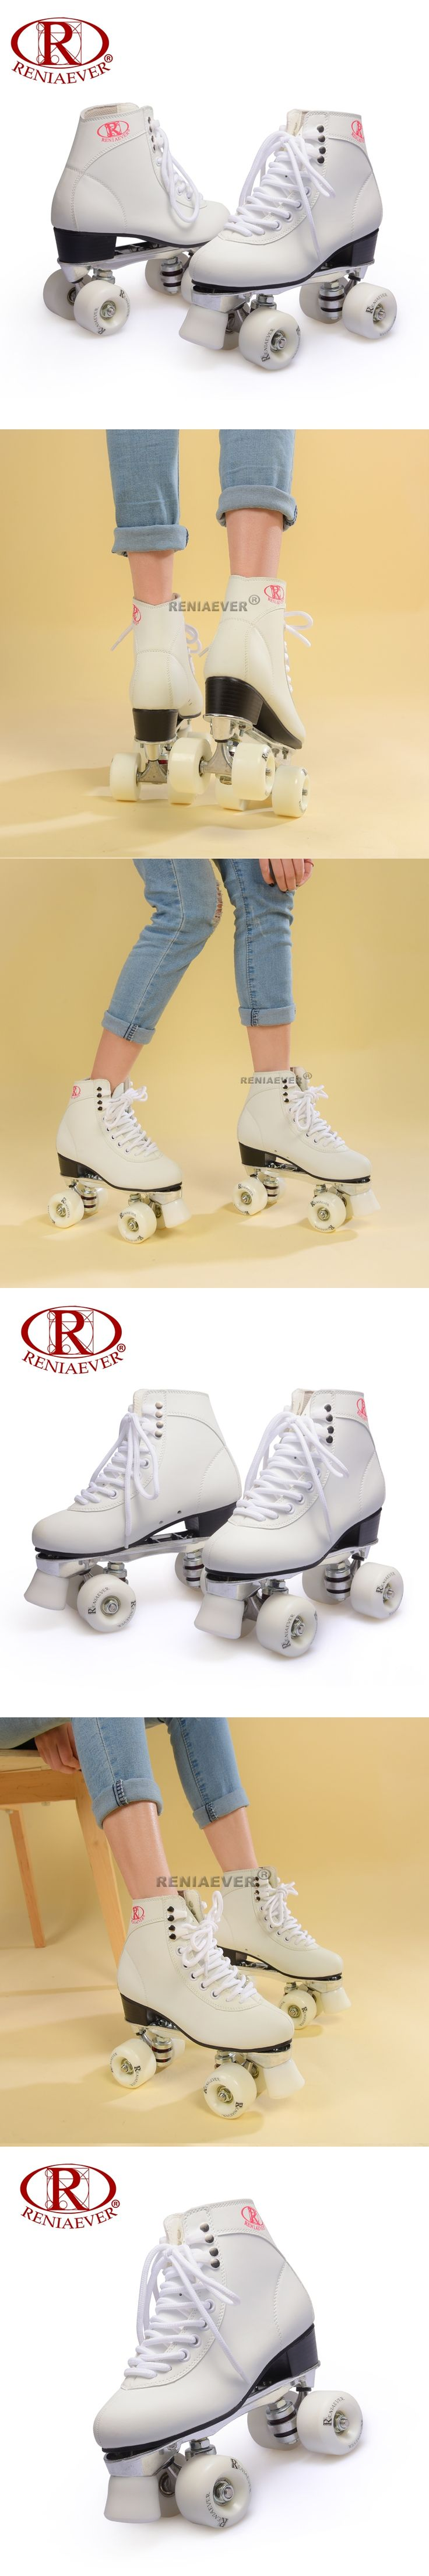 Roller Skates Genuine  Double Line Skates Adult 4 Wheels Two line White Aluminum Alloy metal chassis Polyurethane wheels